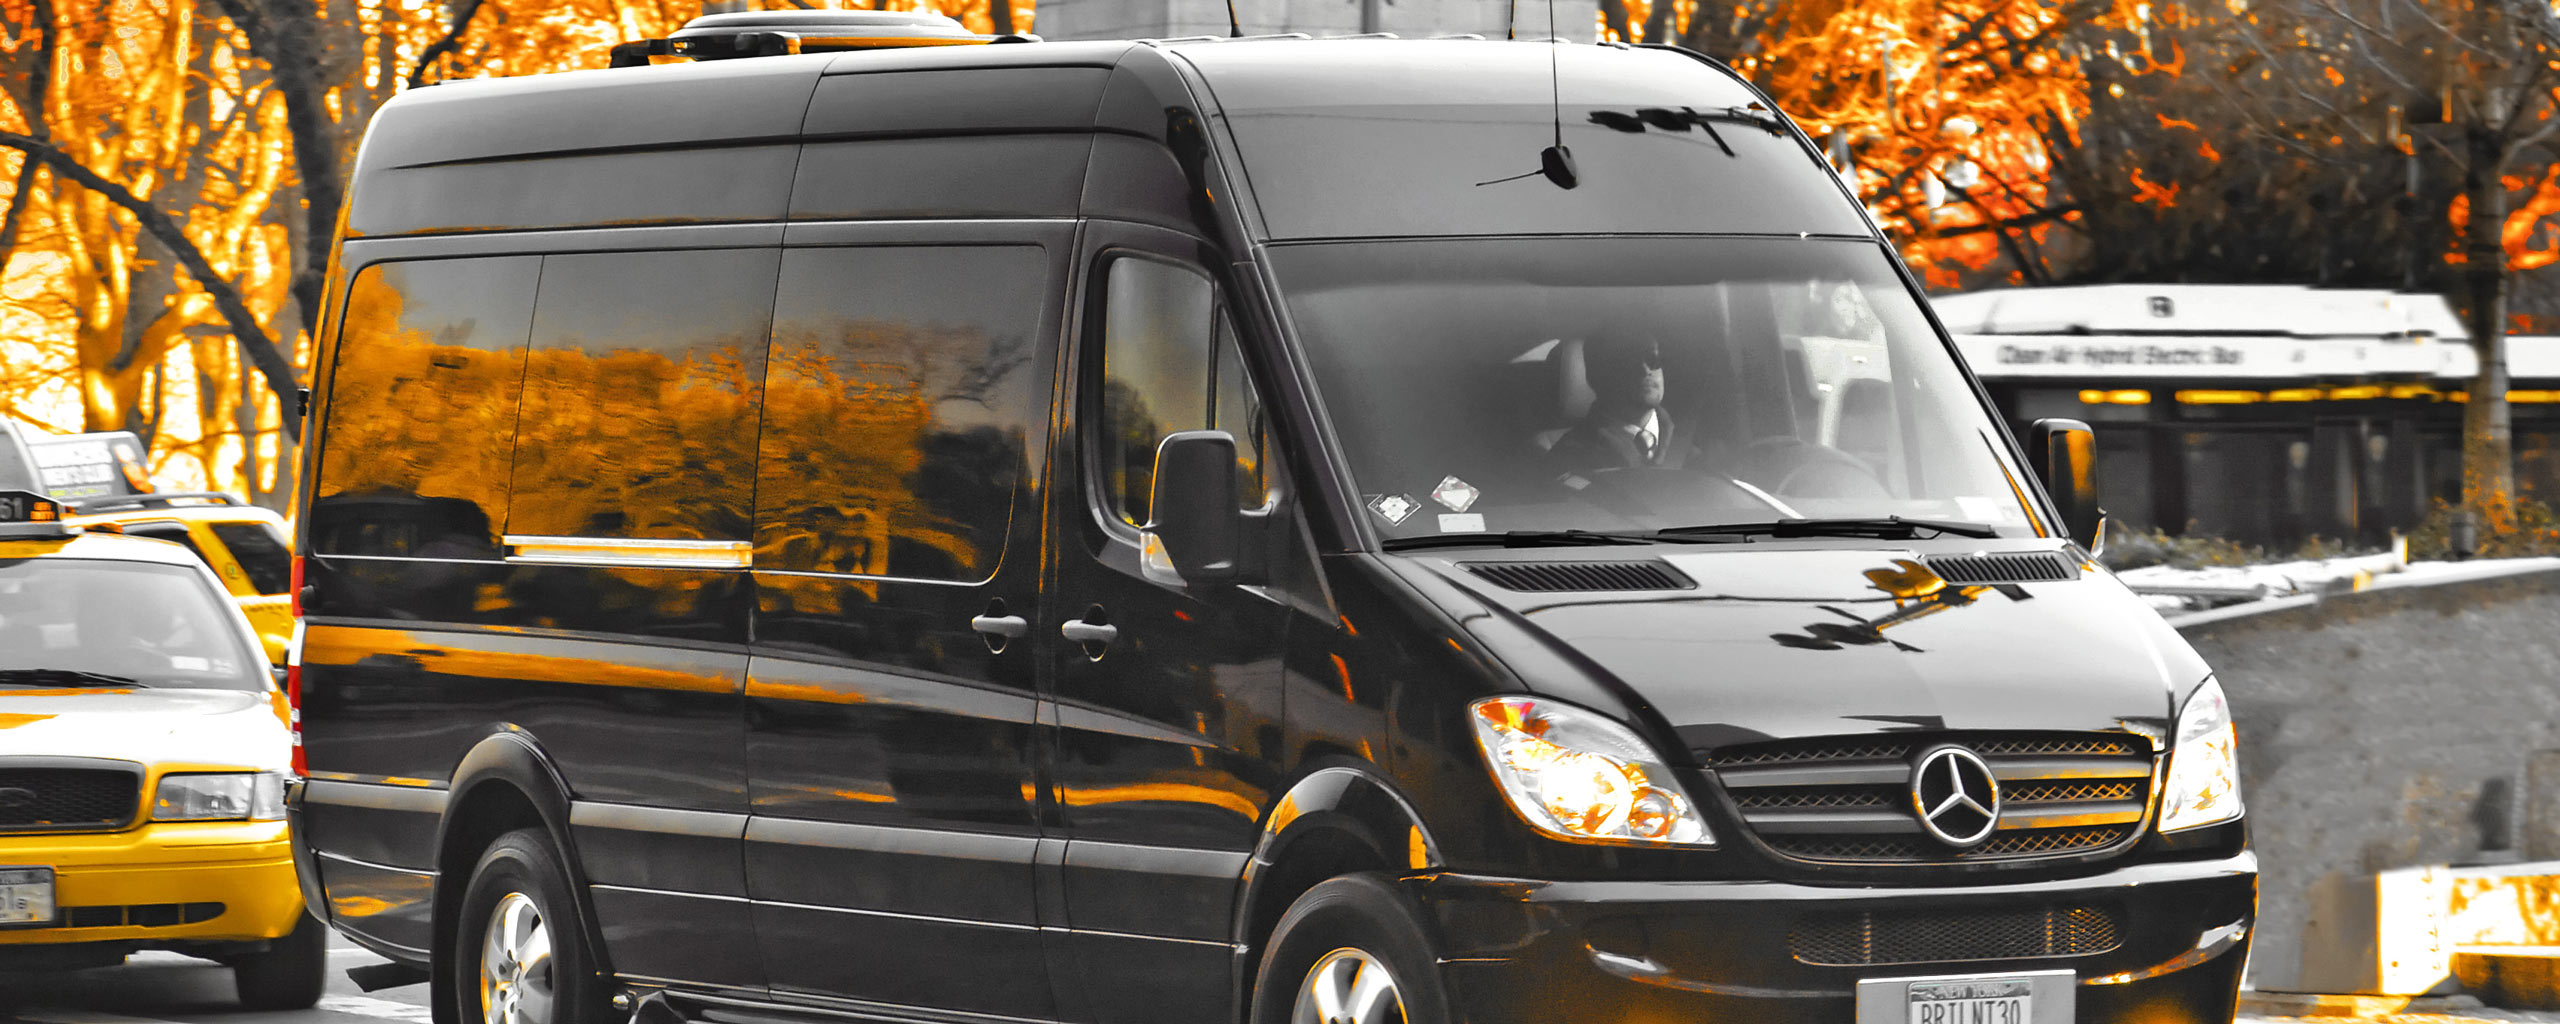 Image gallery sprinter executive for Mercedes benz sprinter van rentals atlanta